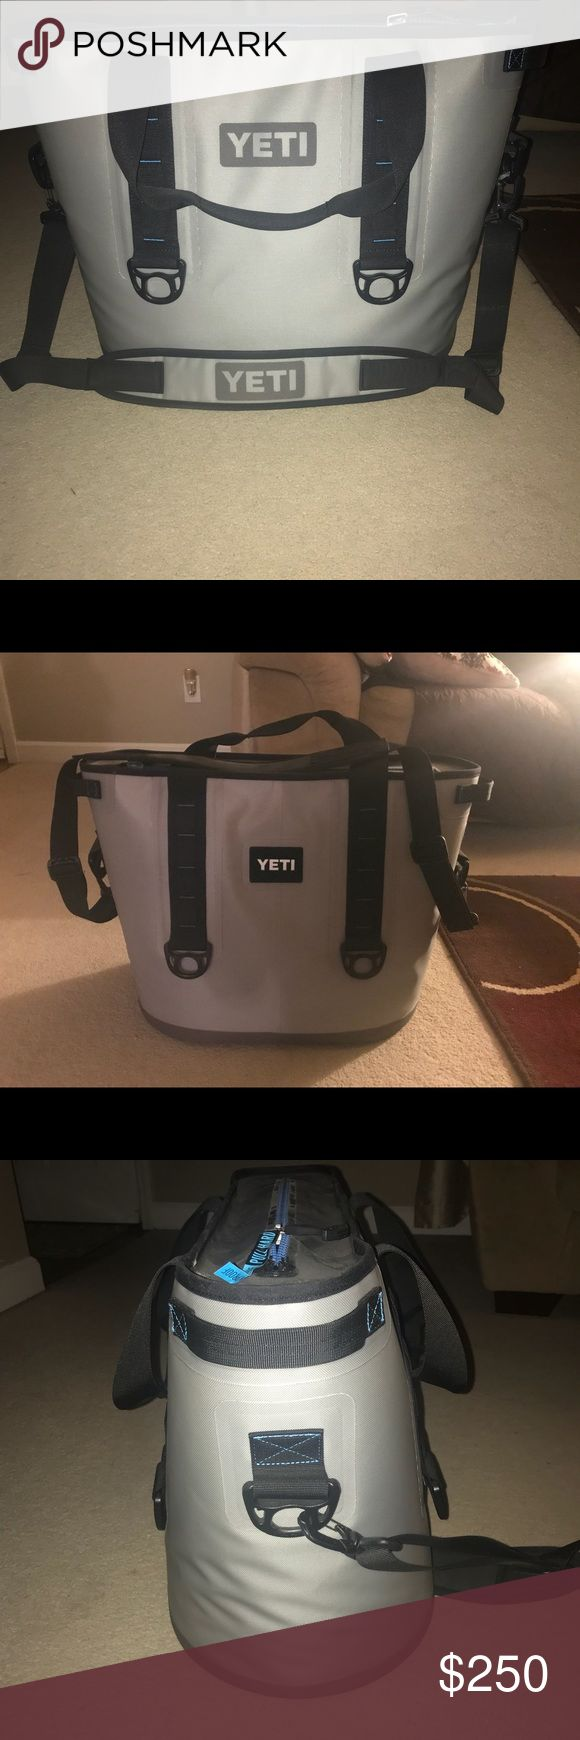 Yeti Hopper cooler Large Yeti Hopper cooler. Zip closure. Carrying strap. Used twice. Can fit a lot and really keeps cold for a long time. Like new, excellent condition yeti Other